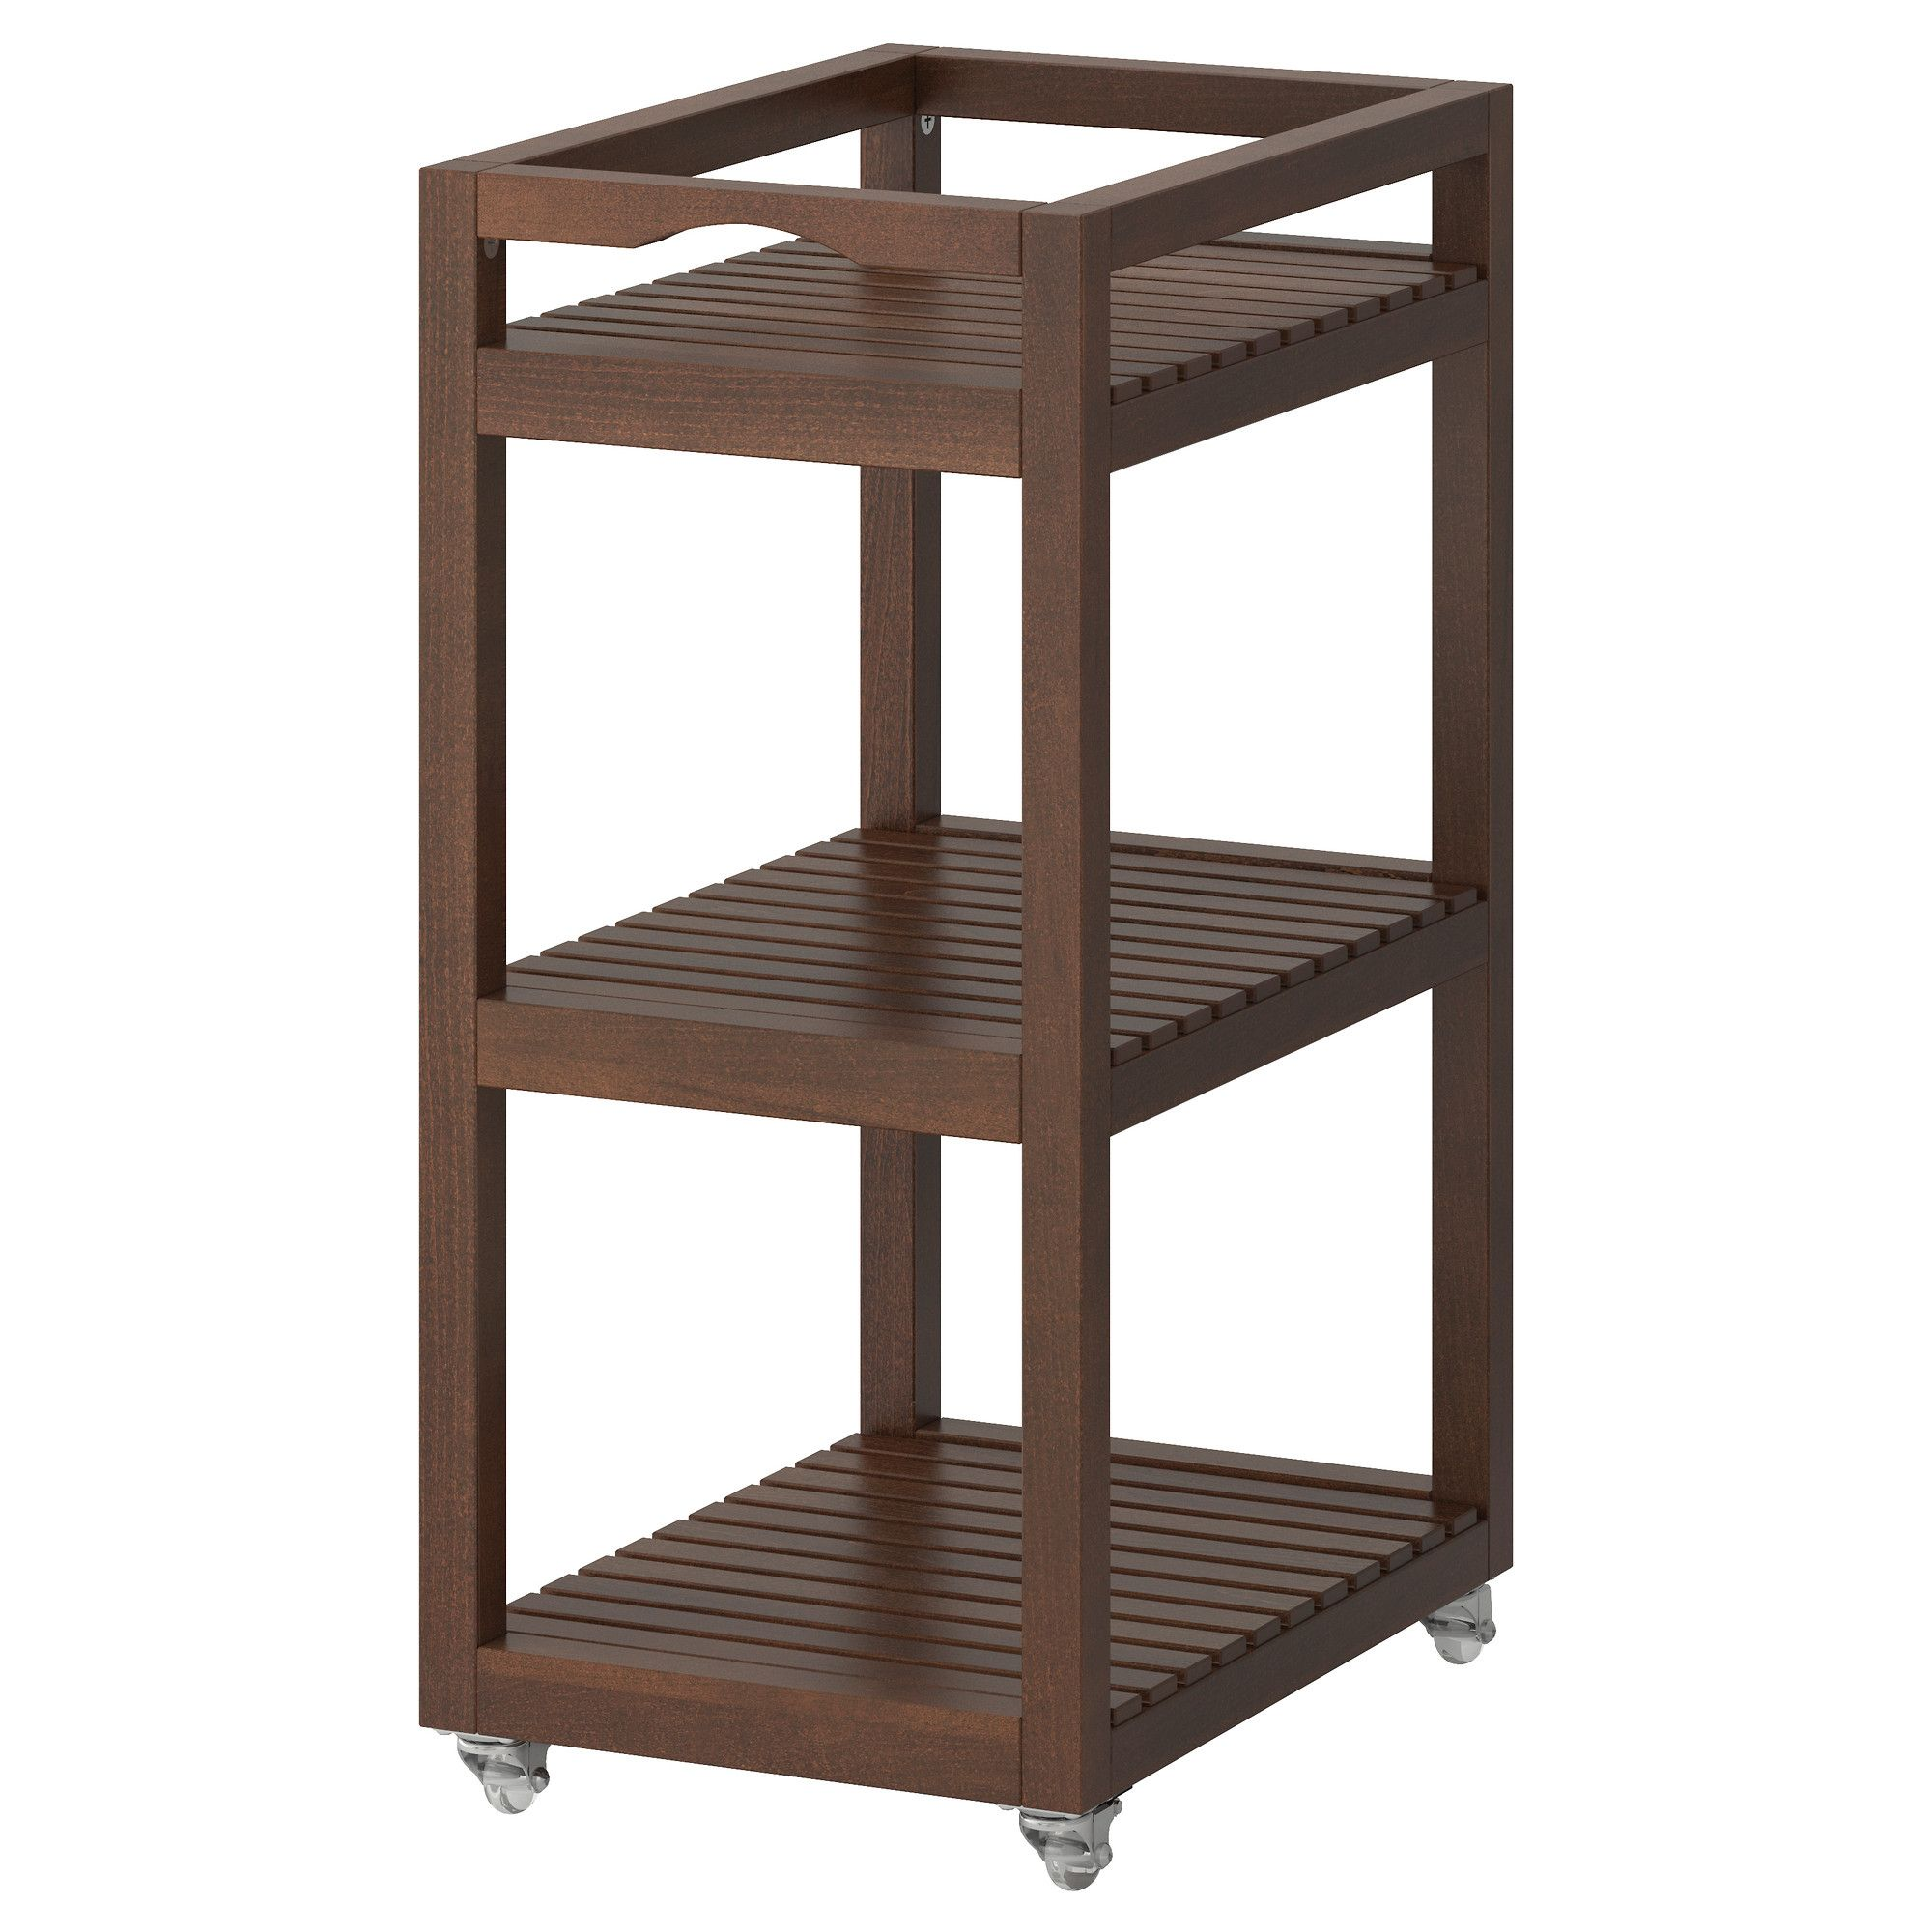 MOLGER Trolley - dark brown - IKEA | House! no, Home! | Pinterest ...